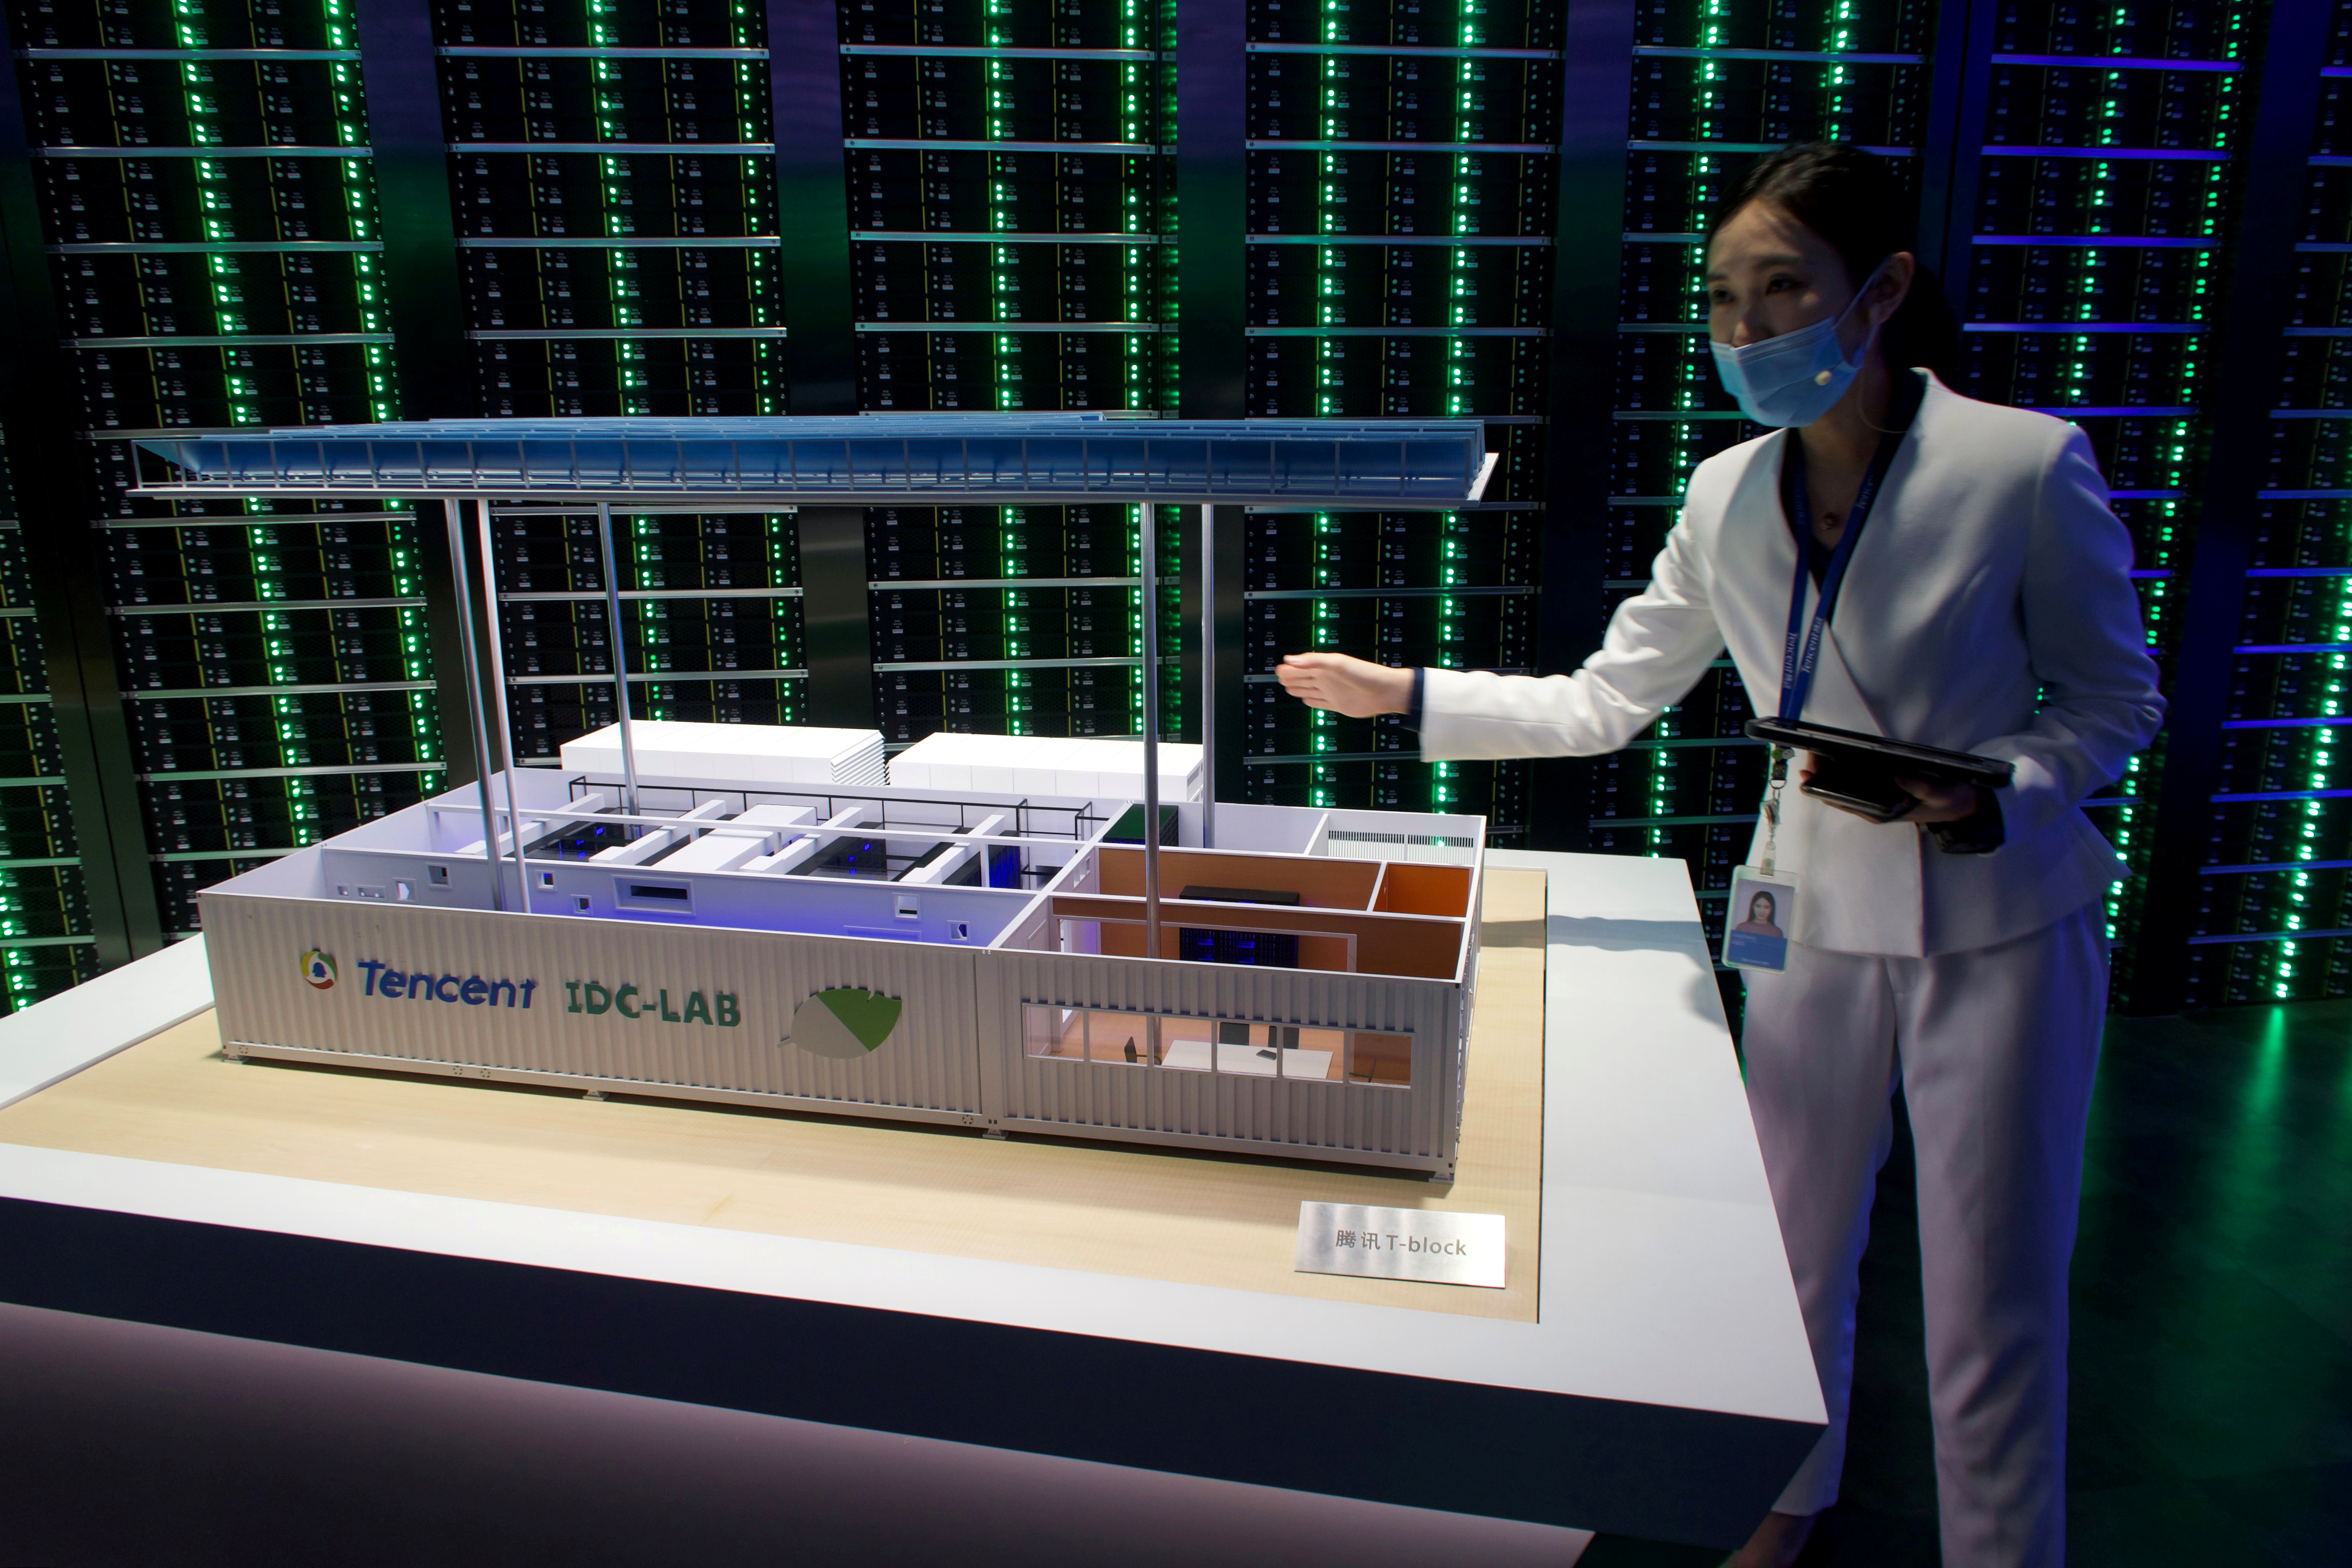 A staff member introduces Tencent's Internet Data Center (IDC) cloud computing service during a government-organized media tour to Tencent headquarters in Shenzhen, Guangdong province China September 27, 2020. REUTERS/David Kirton/File Photo